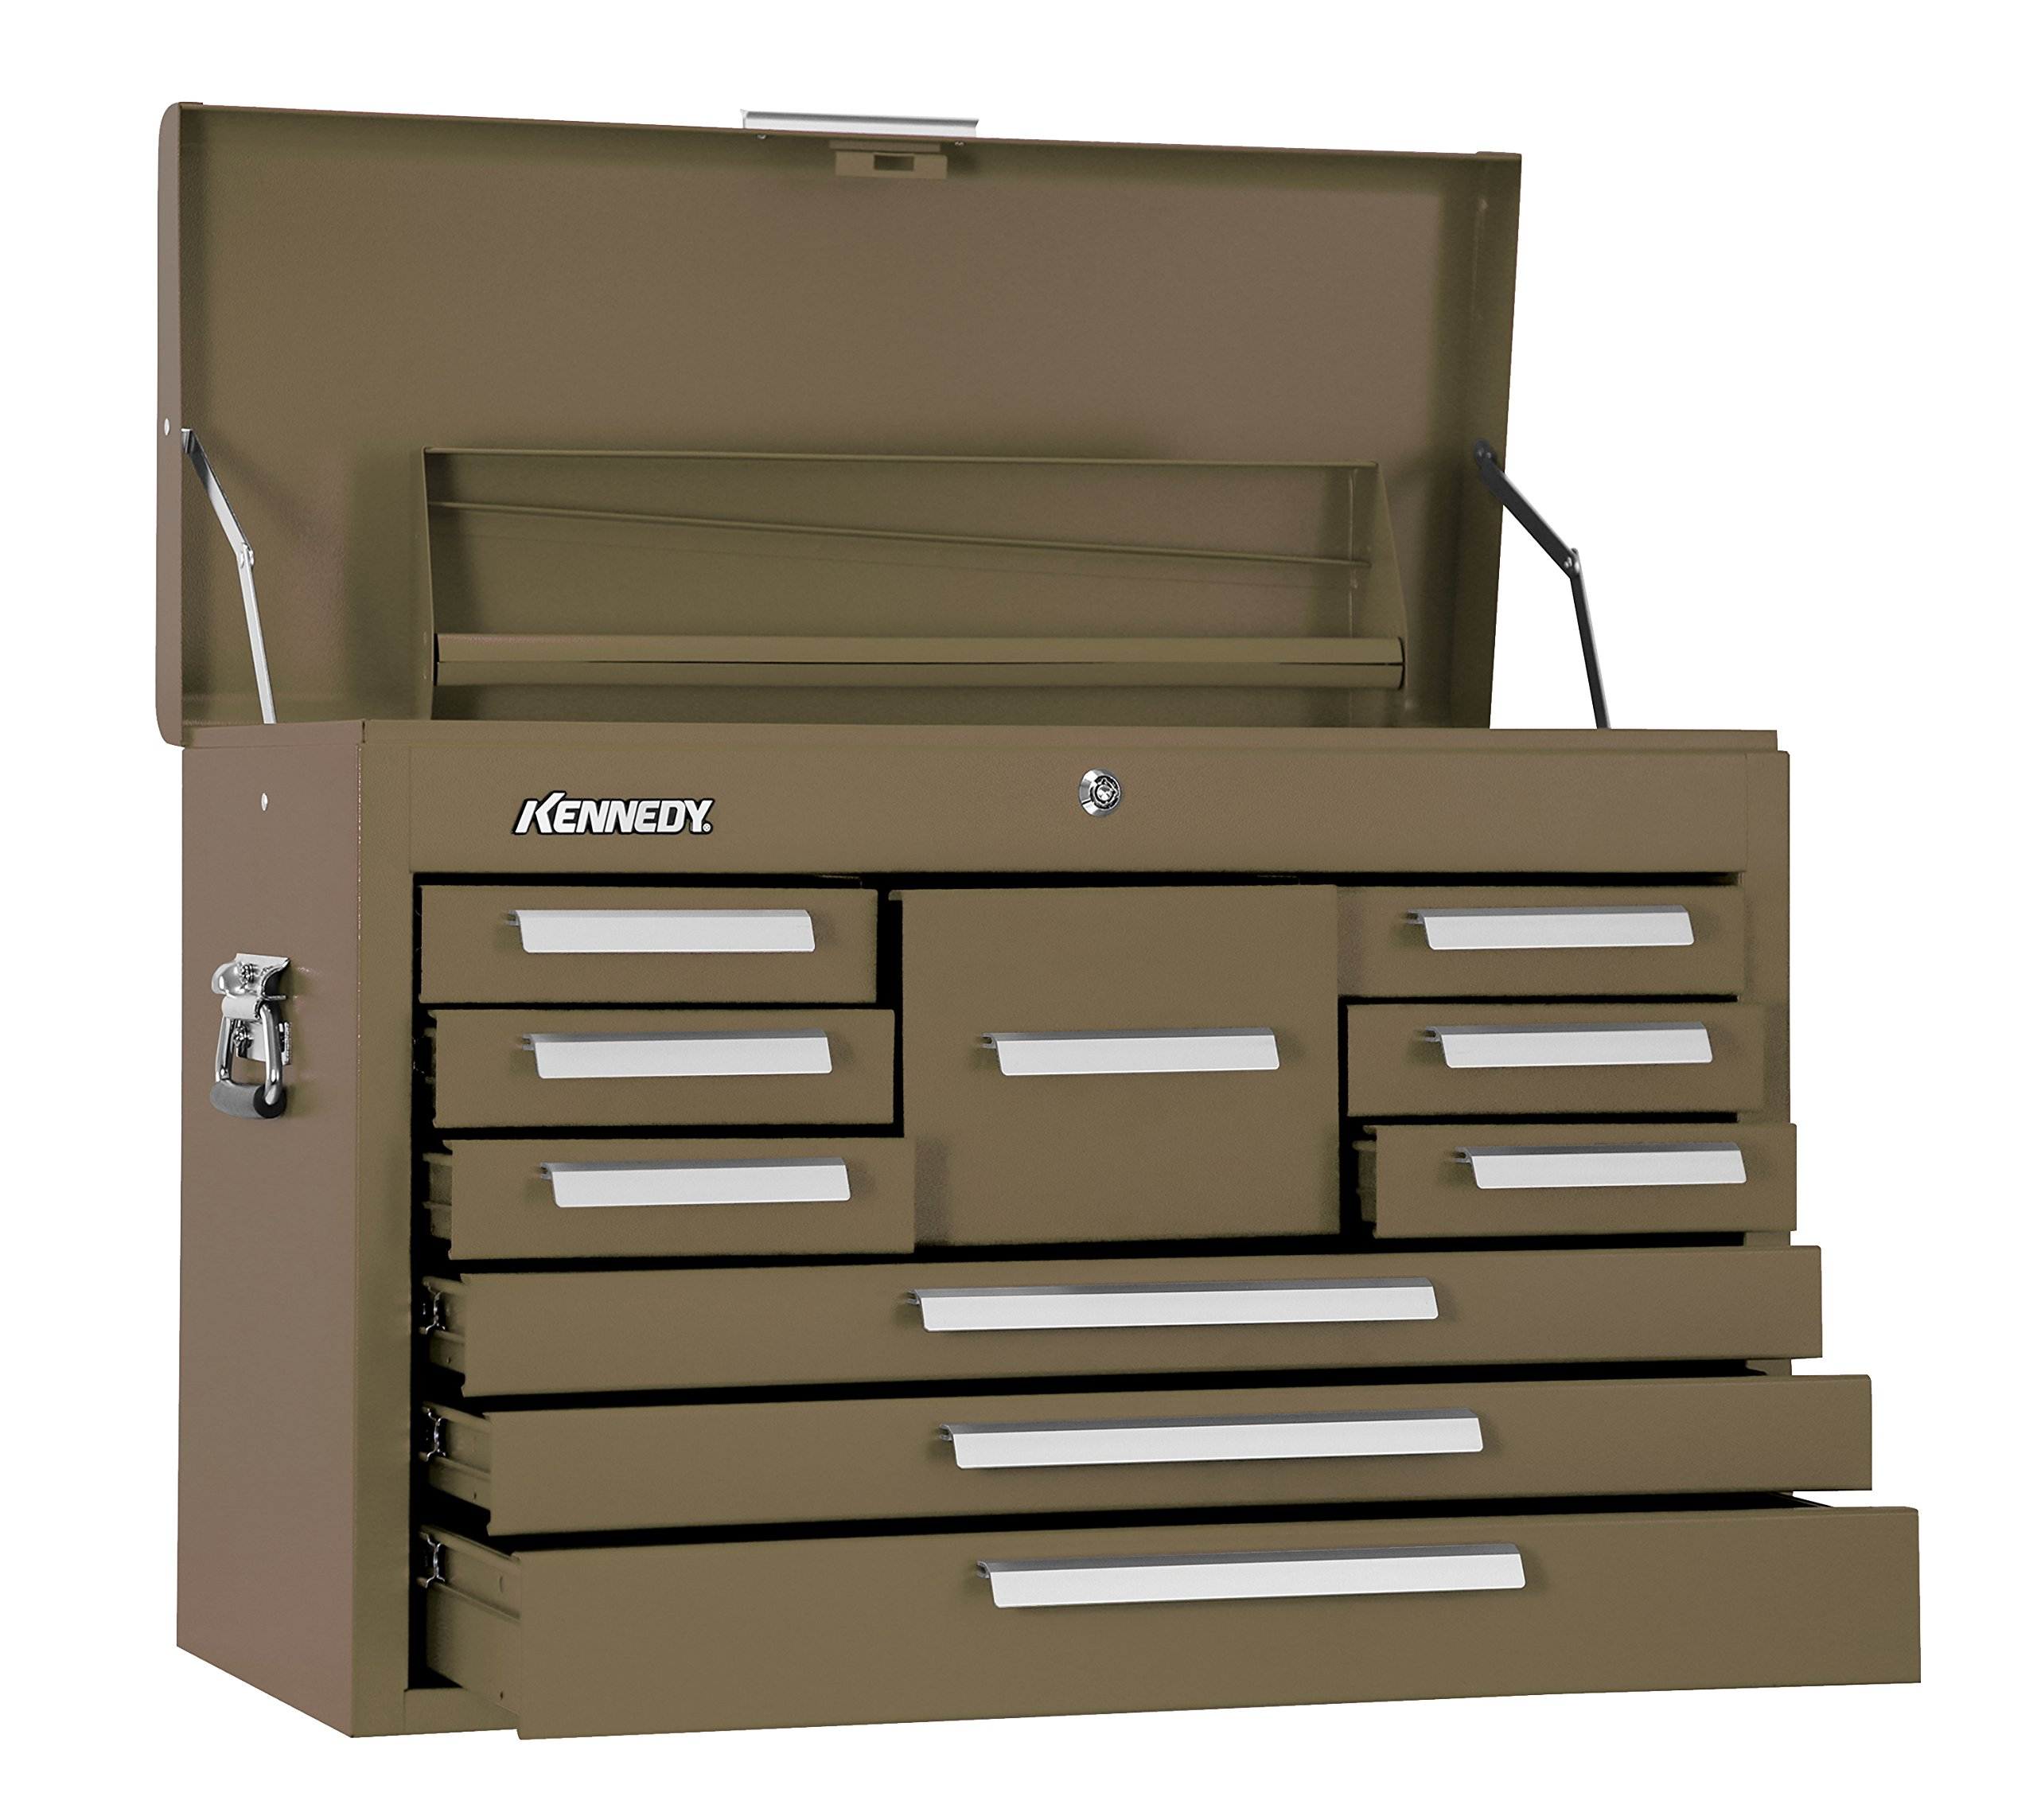 Kennedy Manufacturing 360B 10-Drawer Machinist's Chest with Friction Slides, Brown Wrinkle